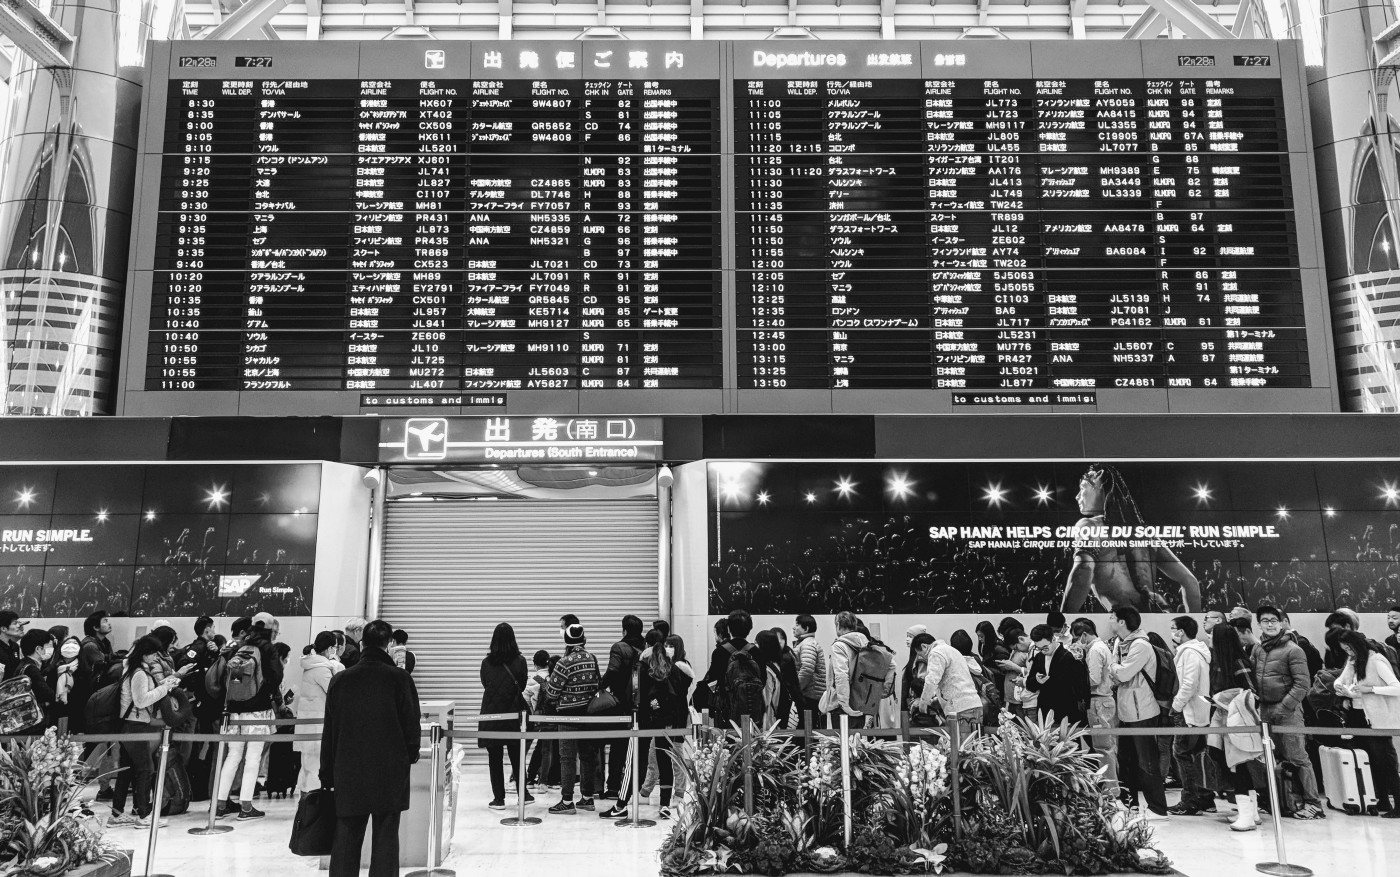 Black and white photo of airport terminal with departure screen.